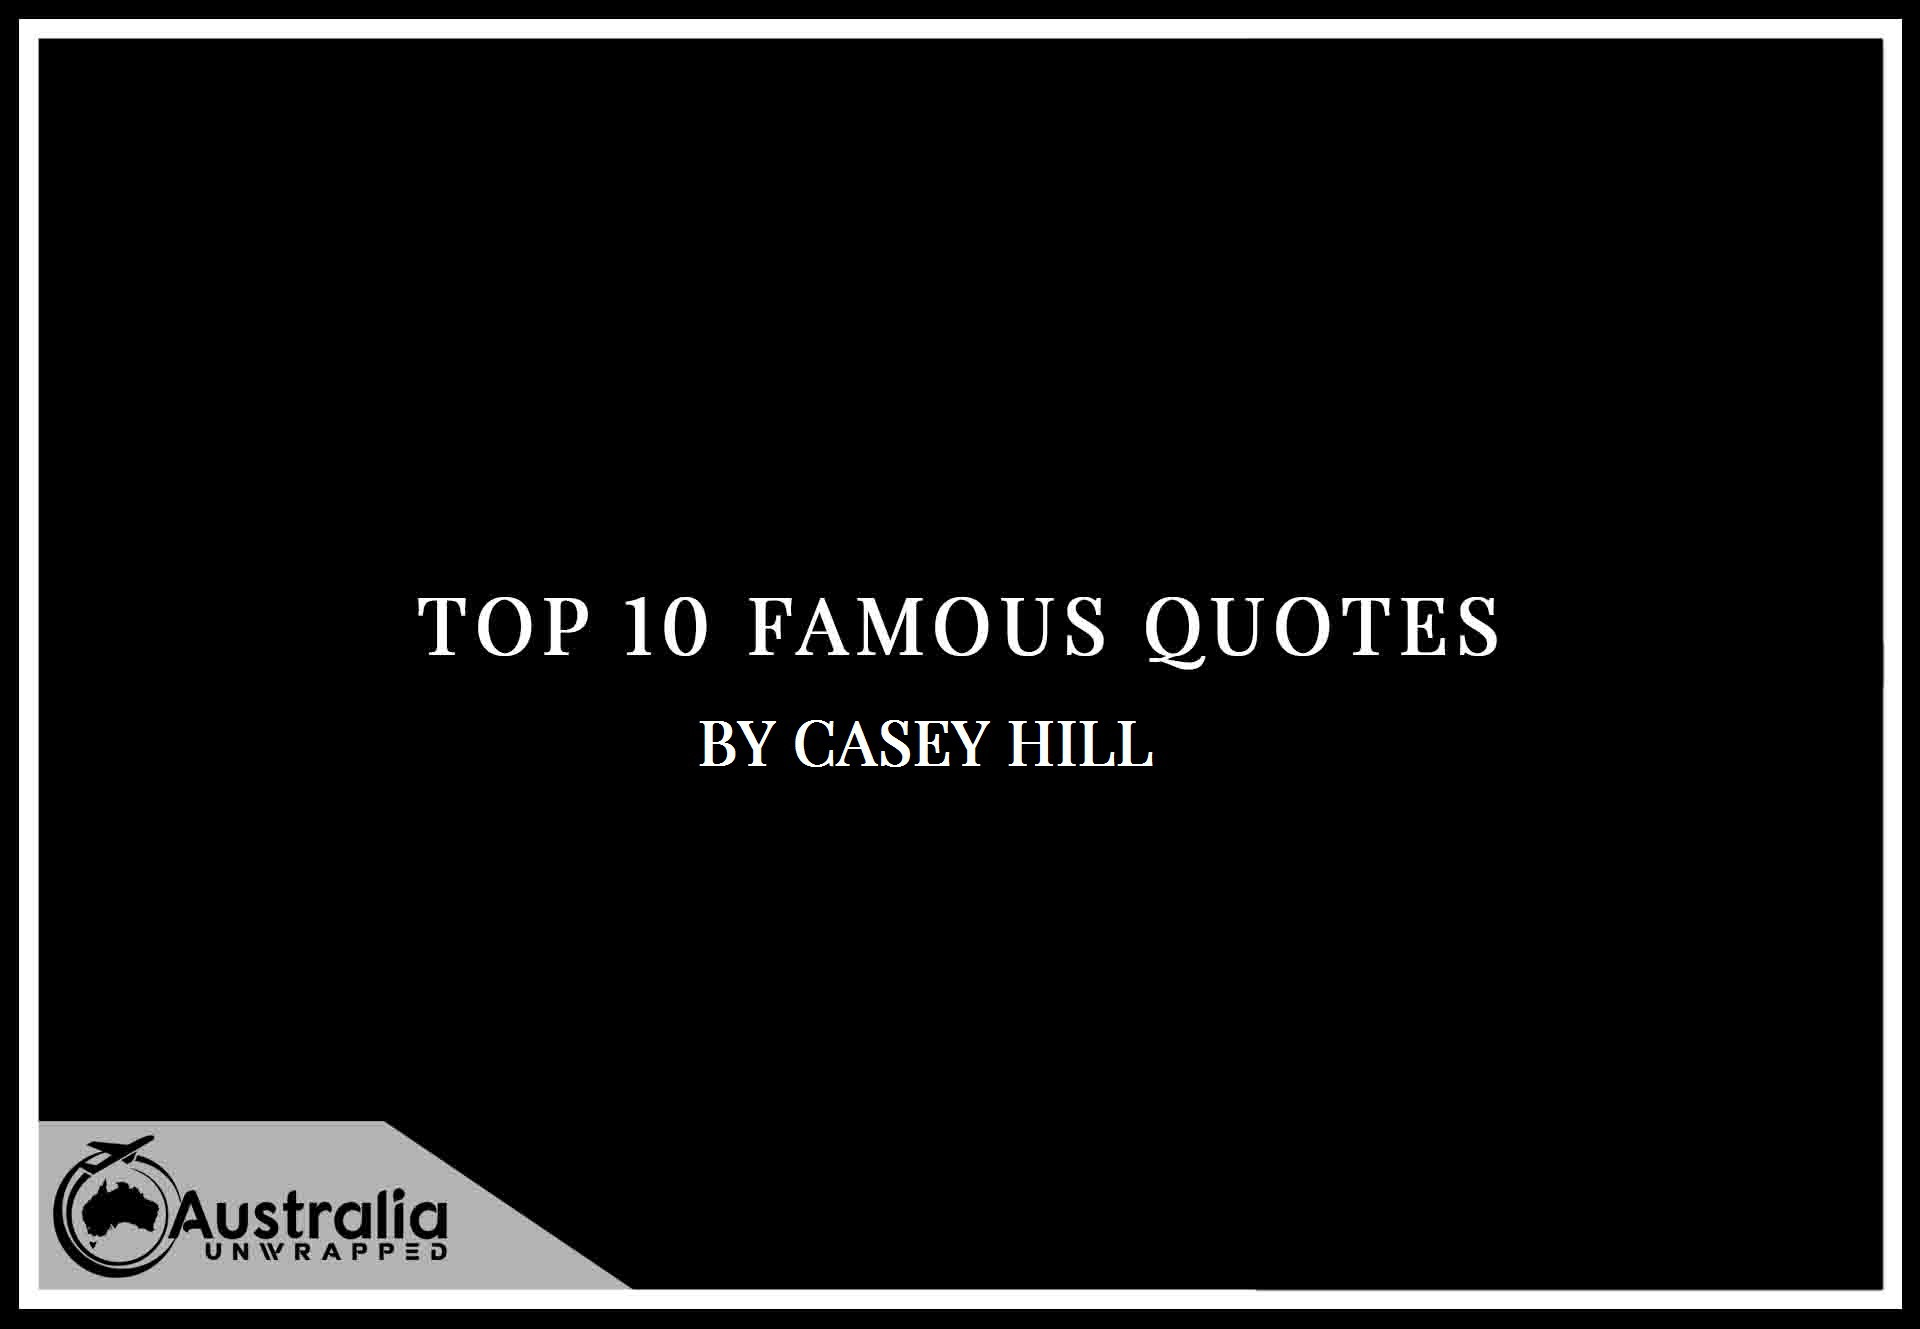 Casey Hill's Top 10 Popular and Famous Quotes